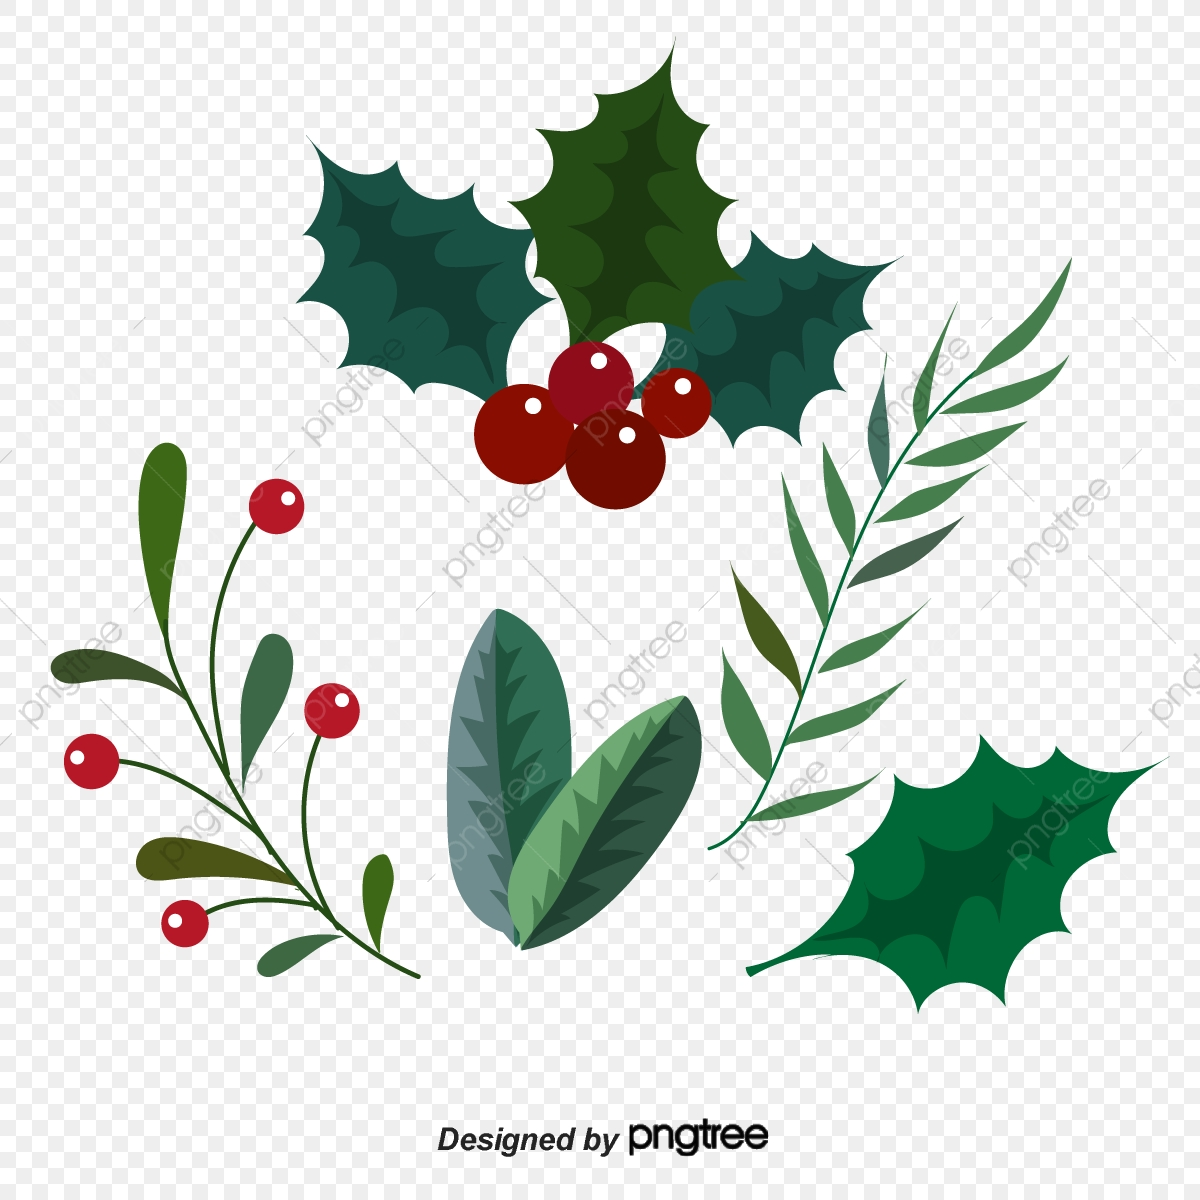 Christmas Leaves.Christmas Plant Leaves Lovely Leaf Christmas Png And